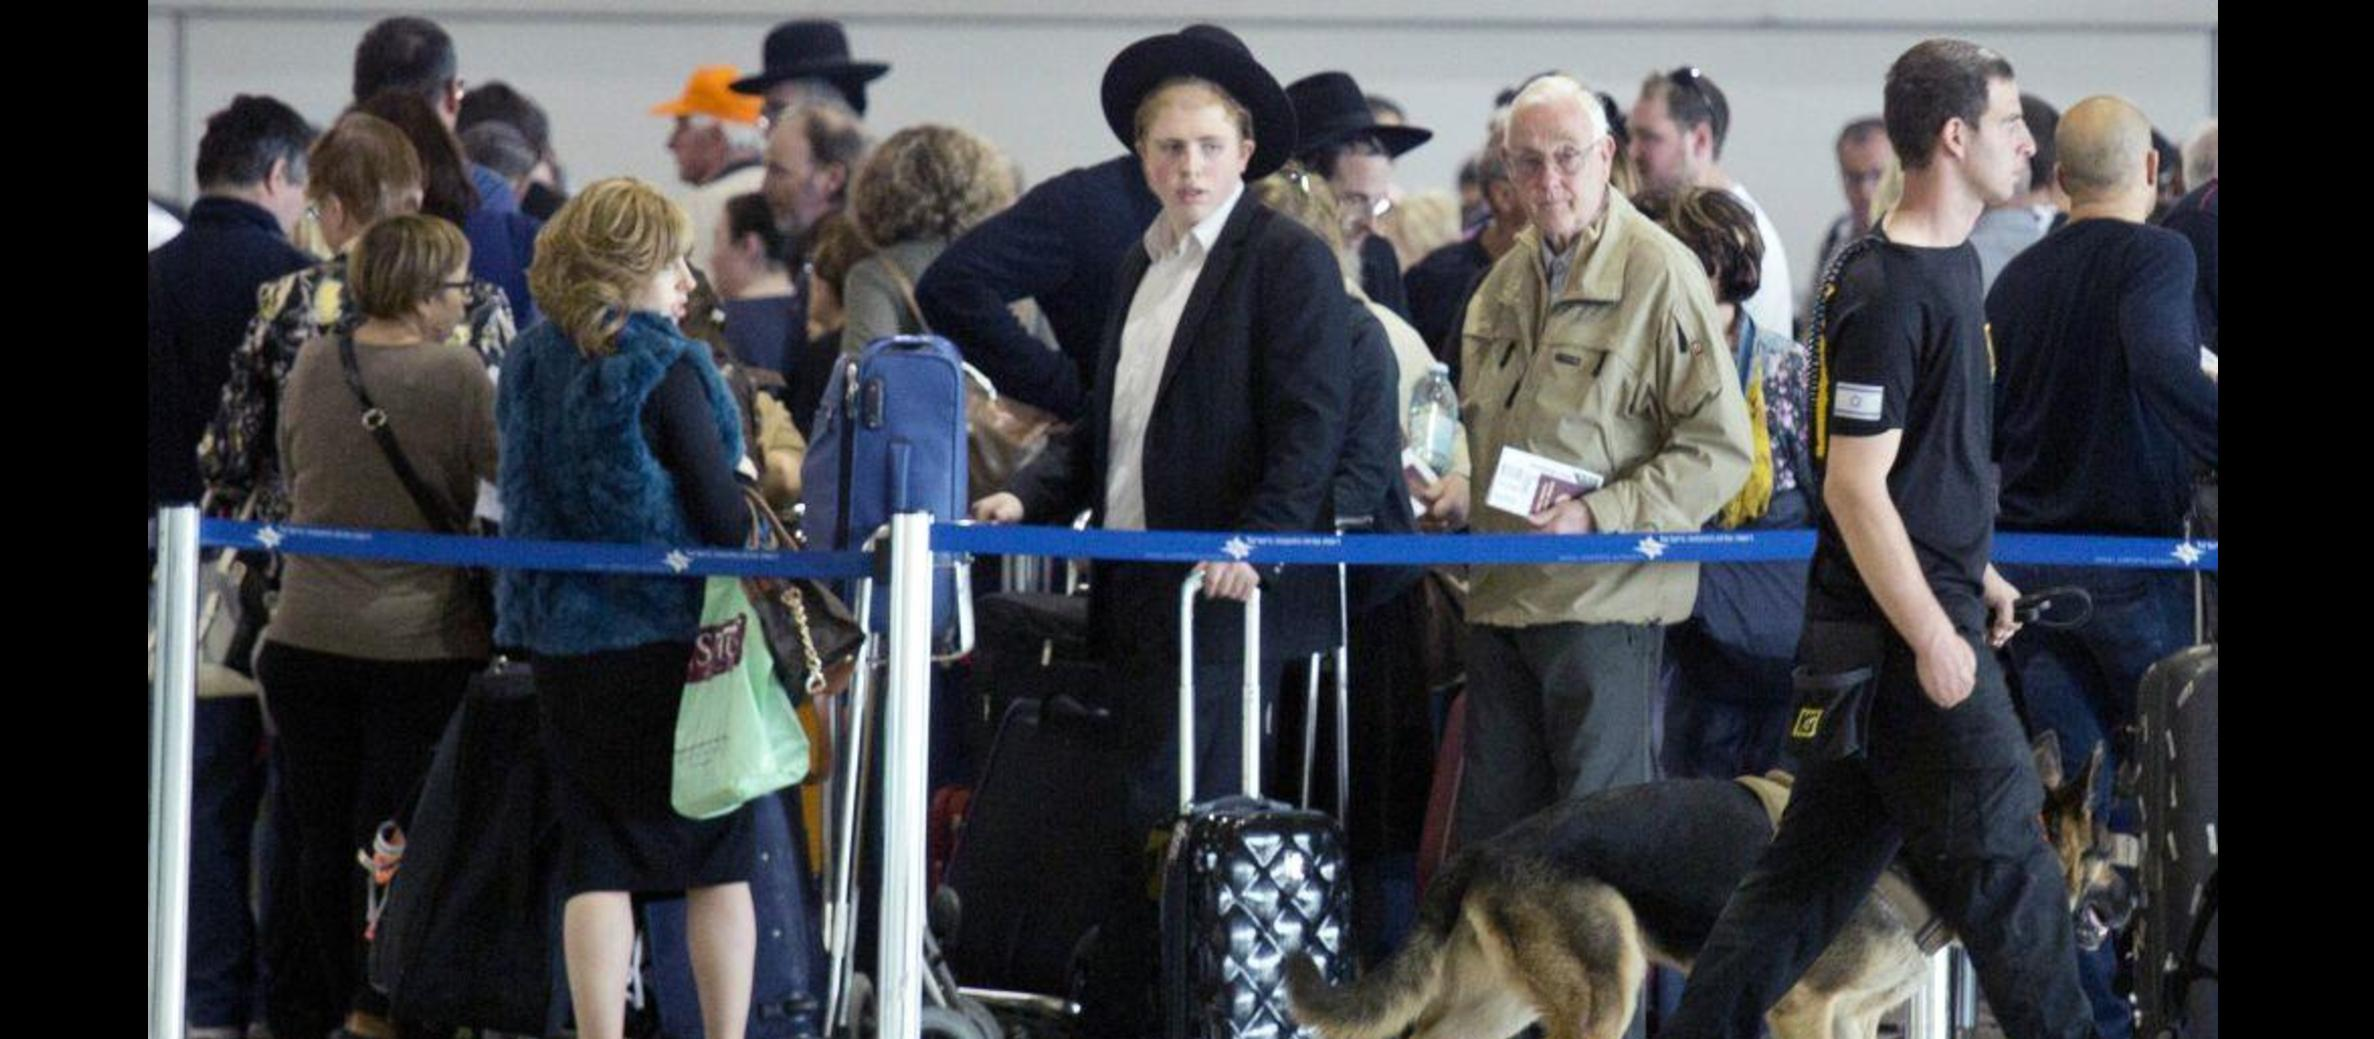 Report: Israel recently warned Belgium of lax airport security